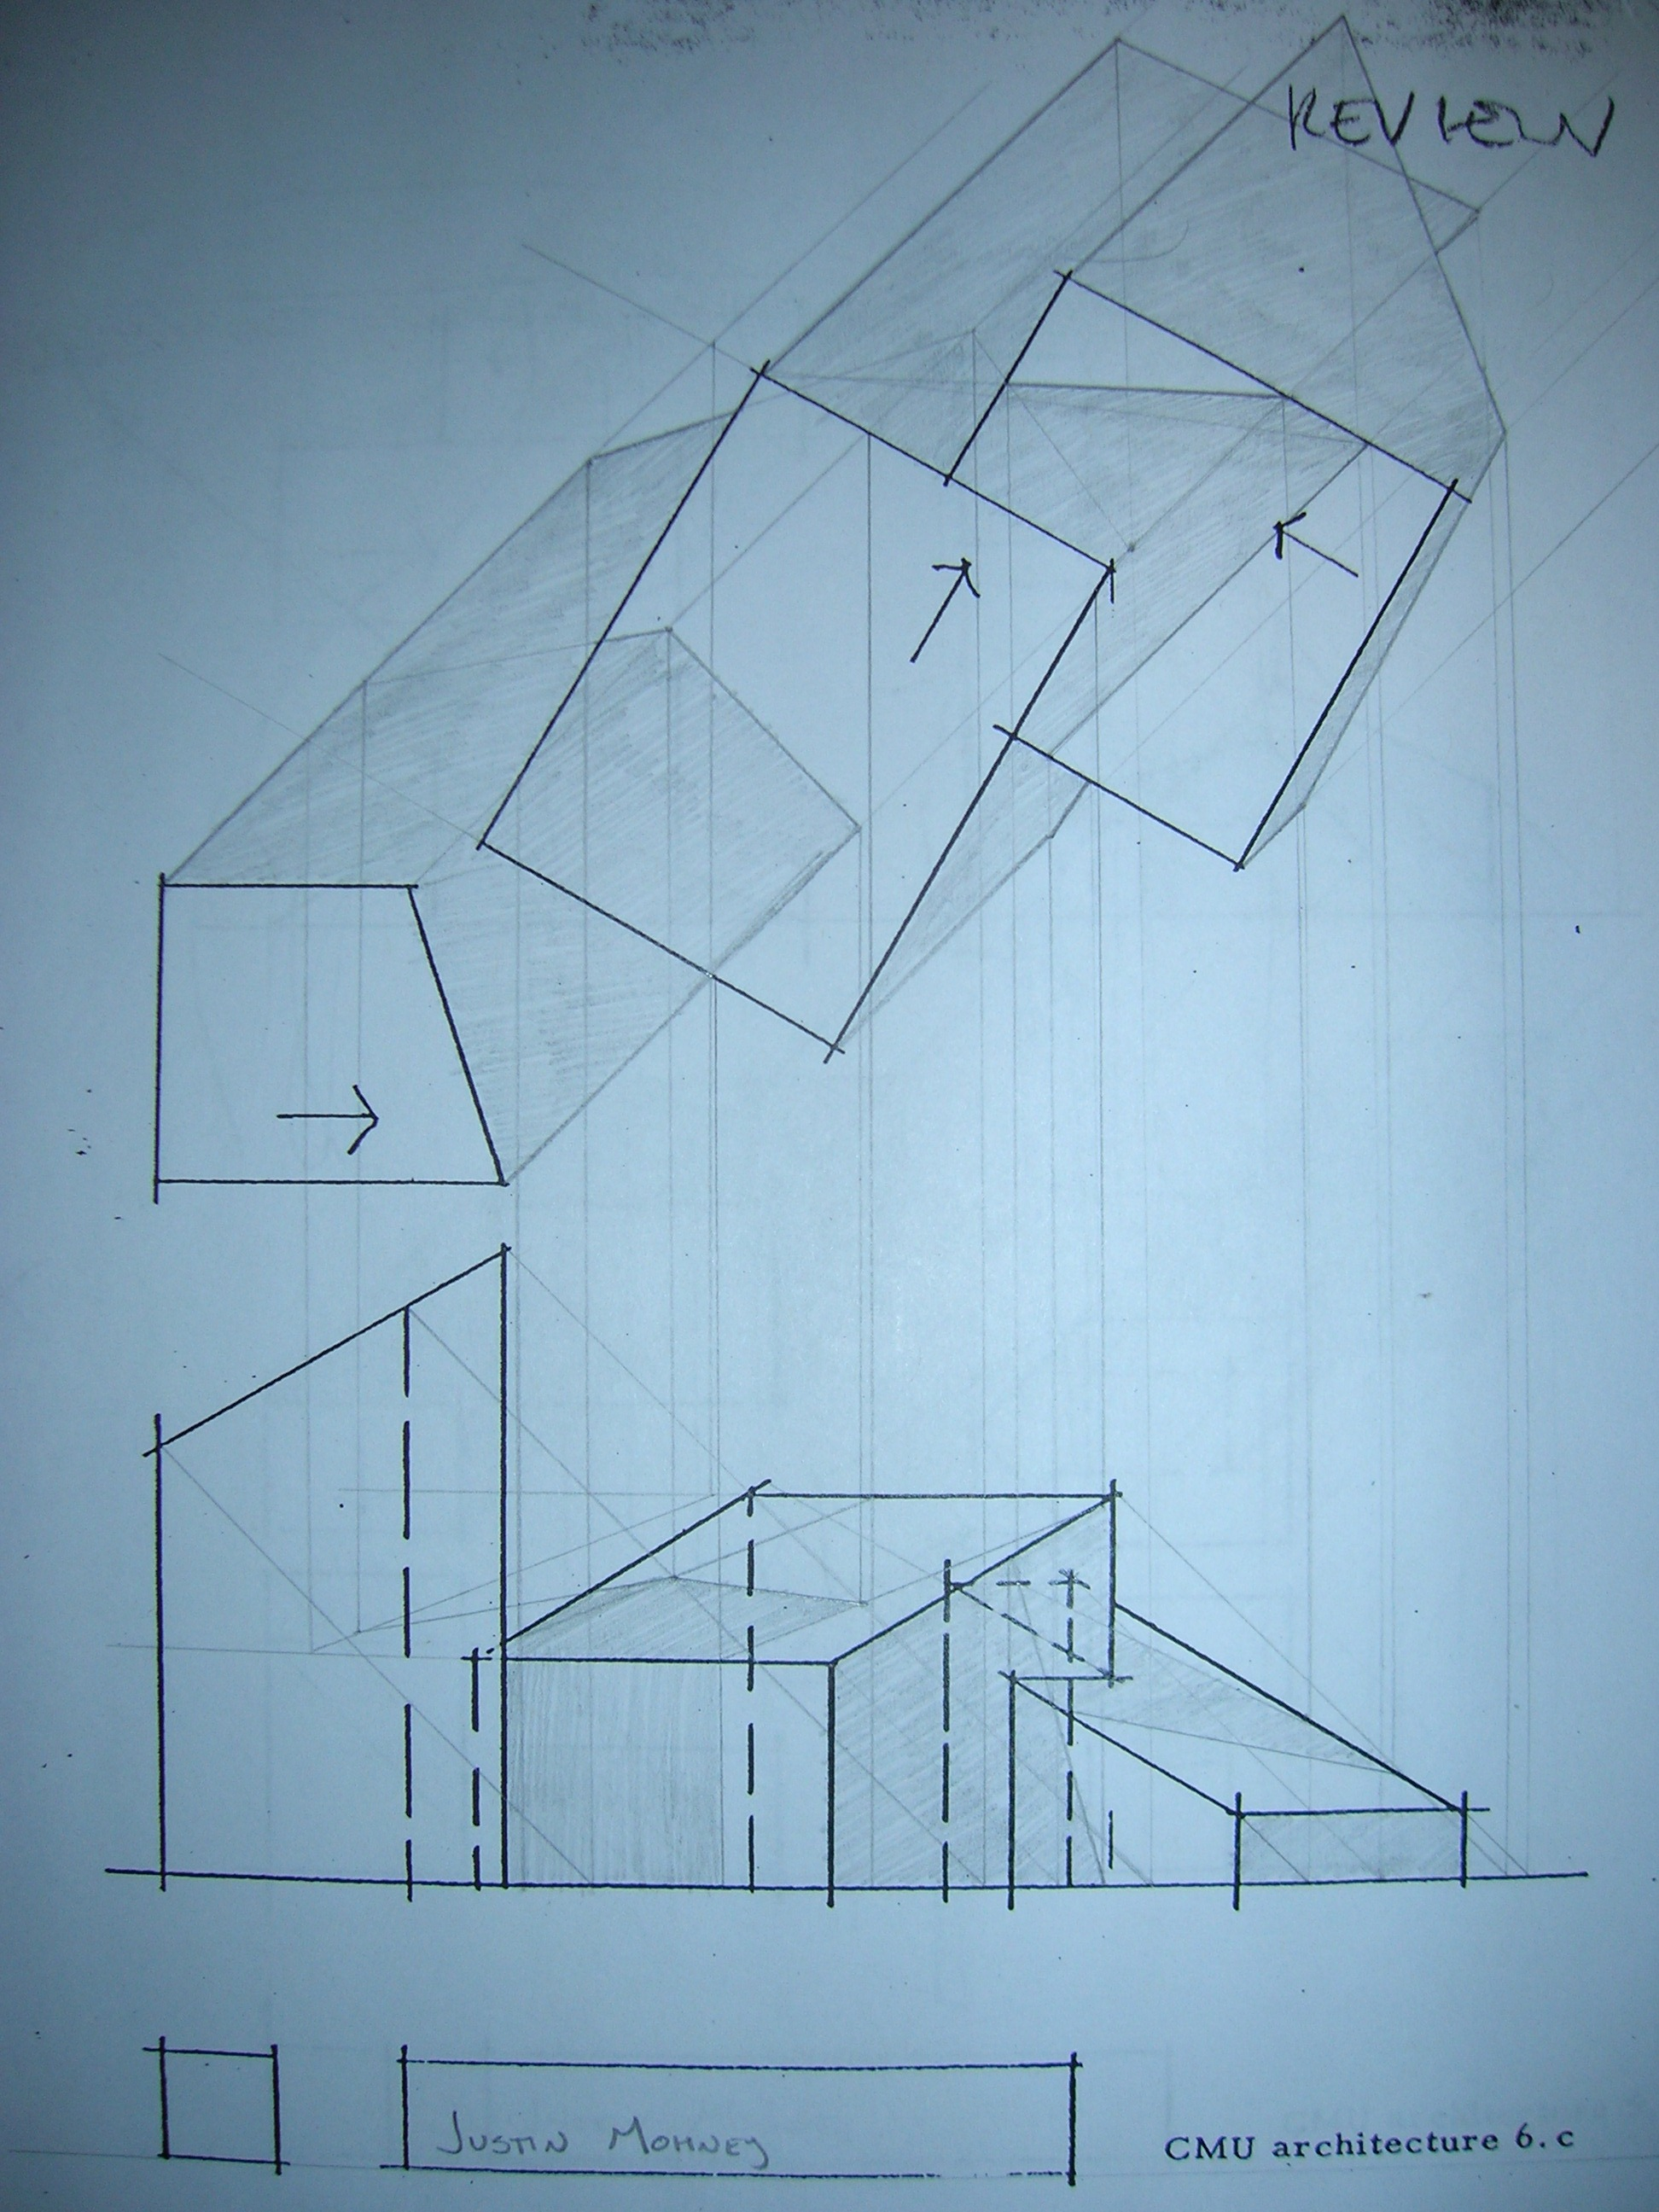 Plan Elevation Perspective : Justin j mohney architectural drawing ii